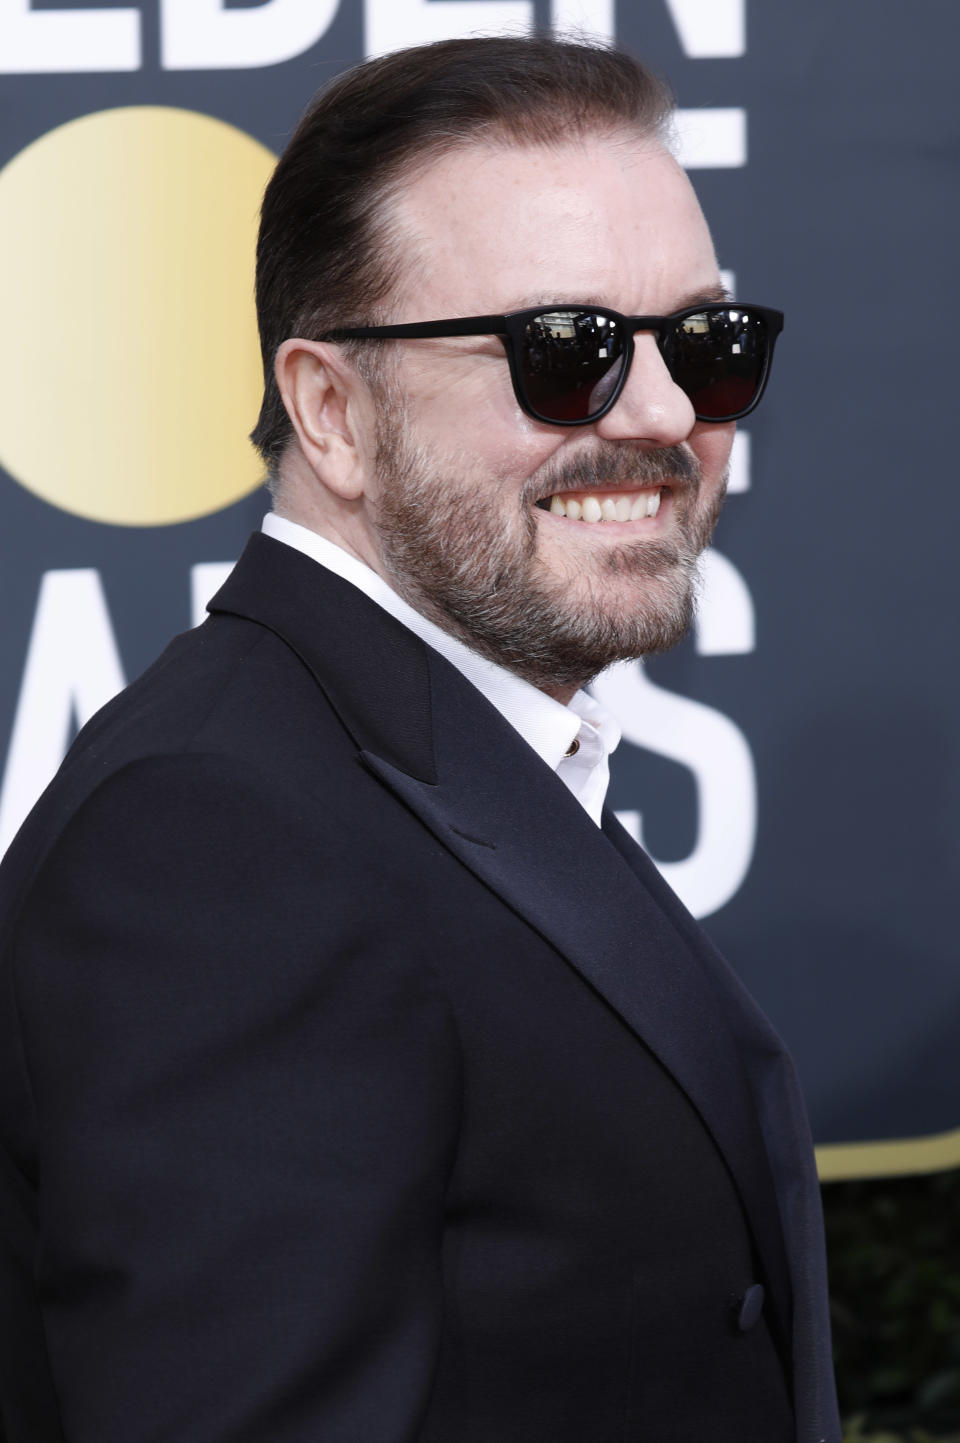 LOS ANGELES, CALIFORNIA, UNITED STATES - JANUARY 5, 2020 -                          Ricky Gervais photographed on the red carpet of the 77th Annual Golden Globe Awards at The Beverly Hilton Hotel on January 05, 2020 in Beverly Hills, California.- PHOTOGRAPH BY P. Lehman / Barcroft Media (Photo credit should read P. Lehman / Barcroft Media via Getty Images)